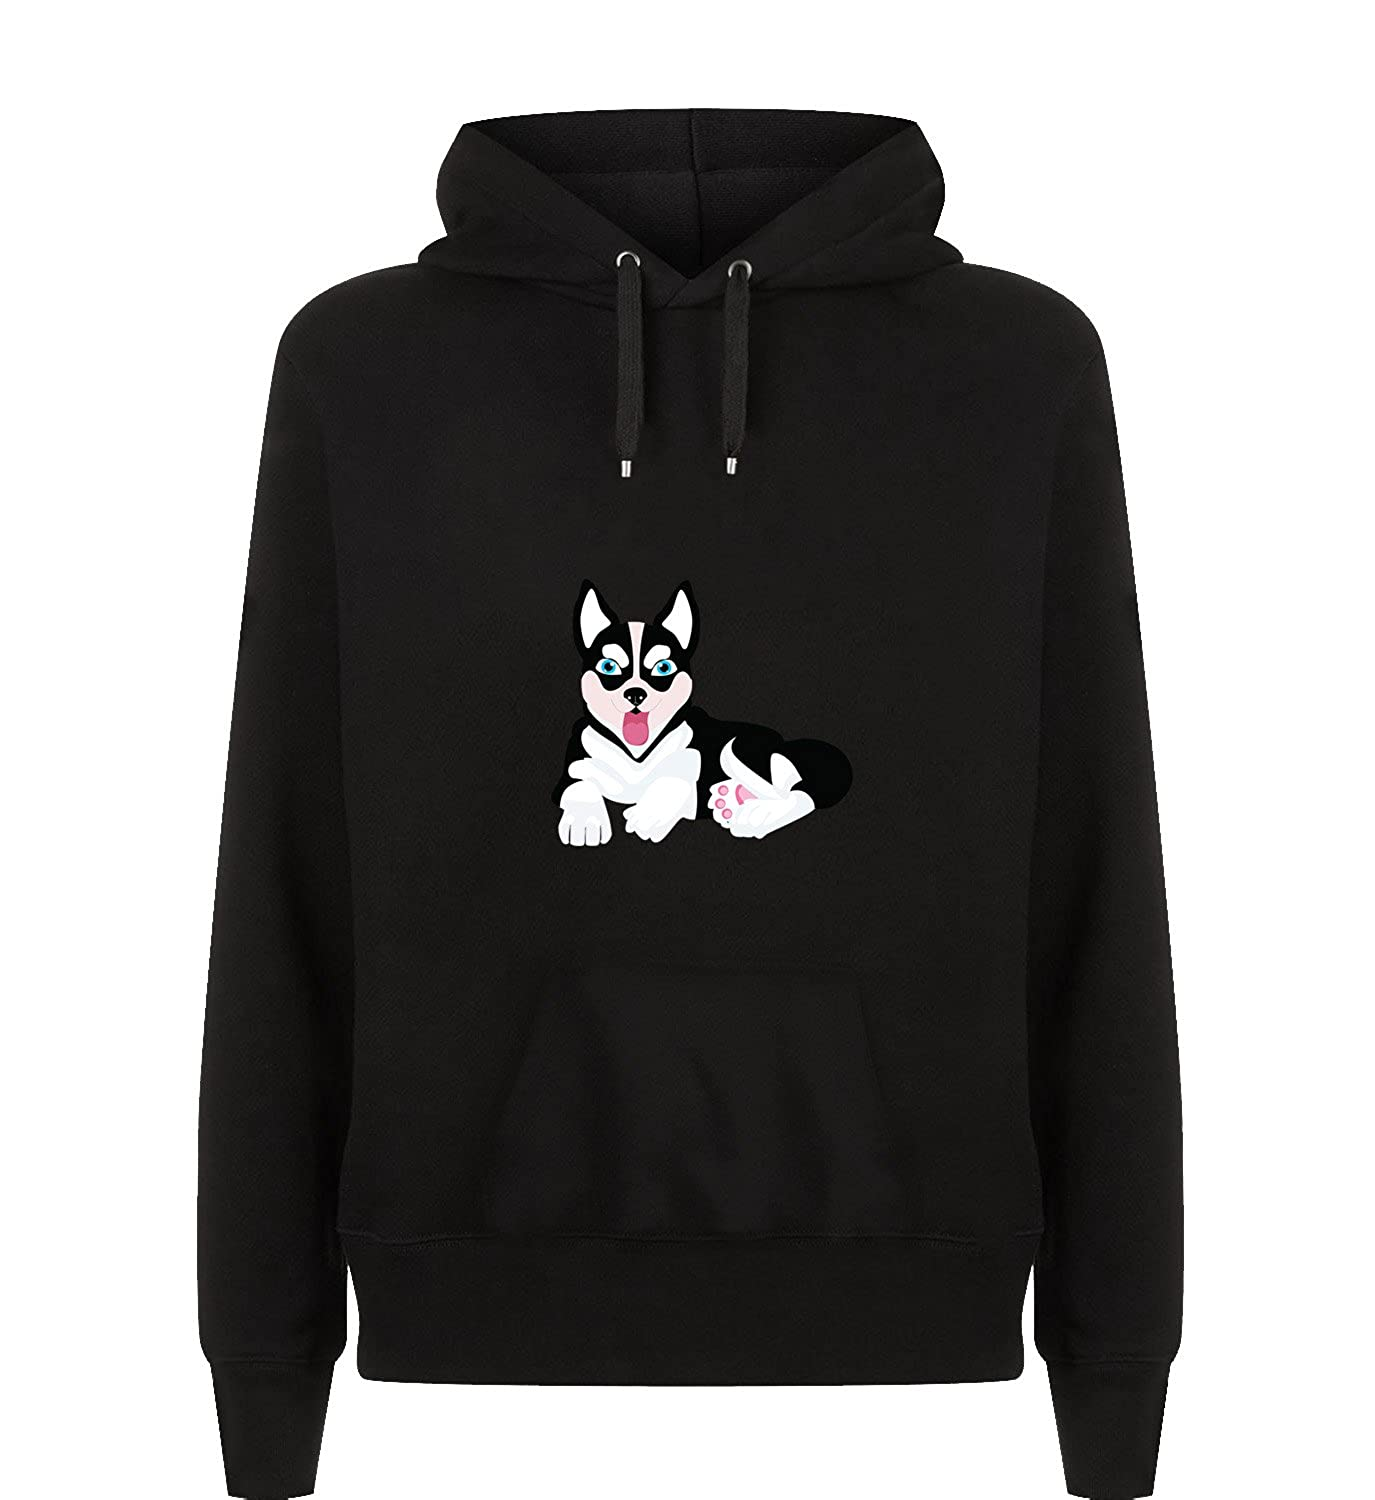 Amazon.com: MYMERCHANDISE Cute Husky Lying Little Dog Friendly Cute Hoodie Hoody Hooded Sweatshirt Christmas: Clothing